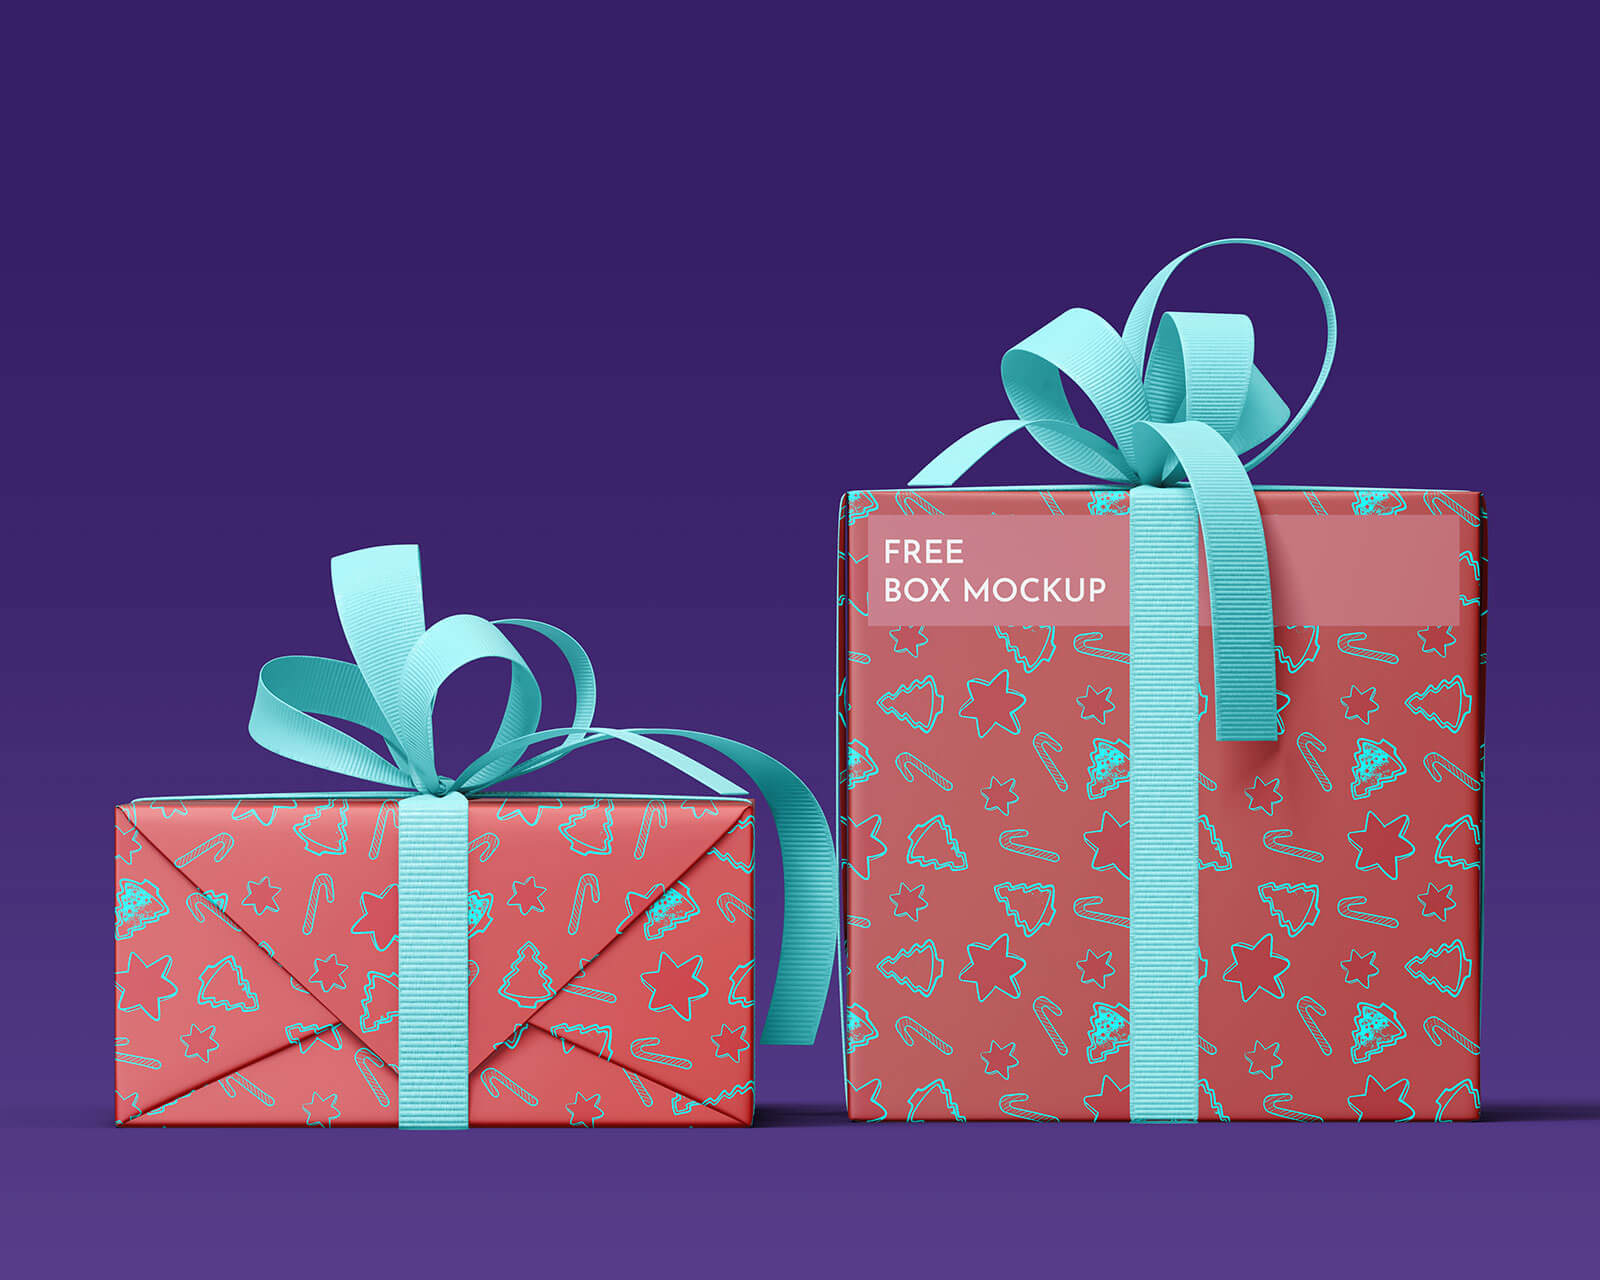 Free Christmas 2020 Gift Boxes Wrapping Paper Mockup PSD Set (1)